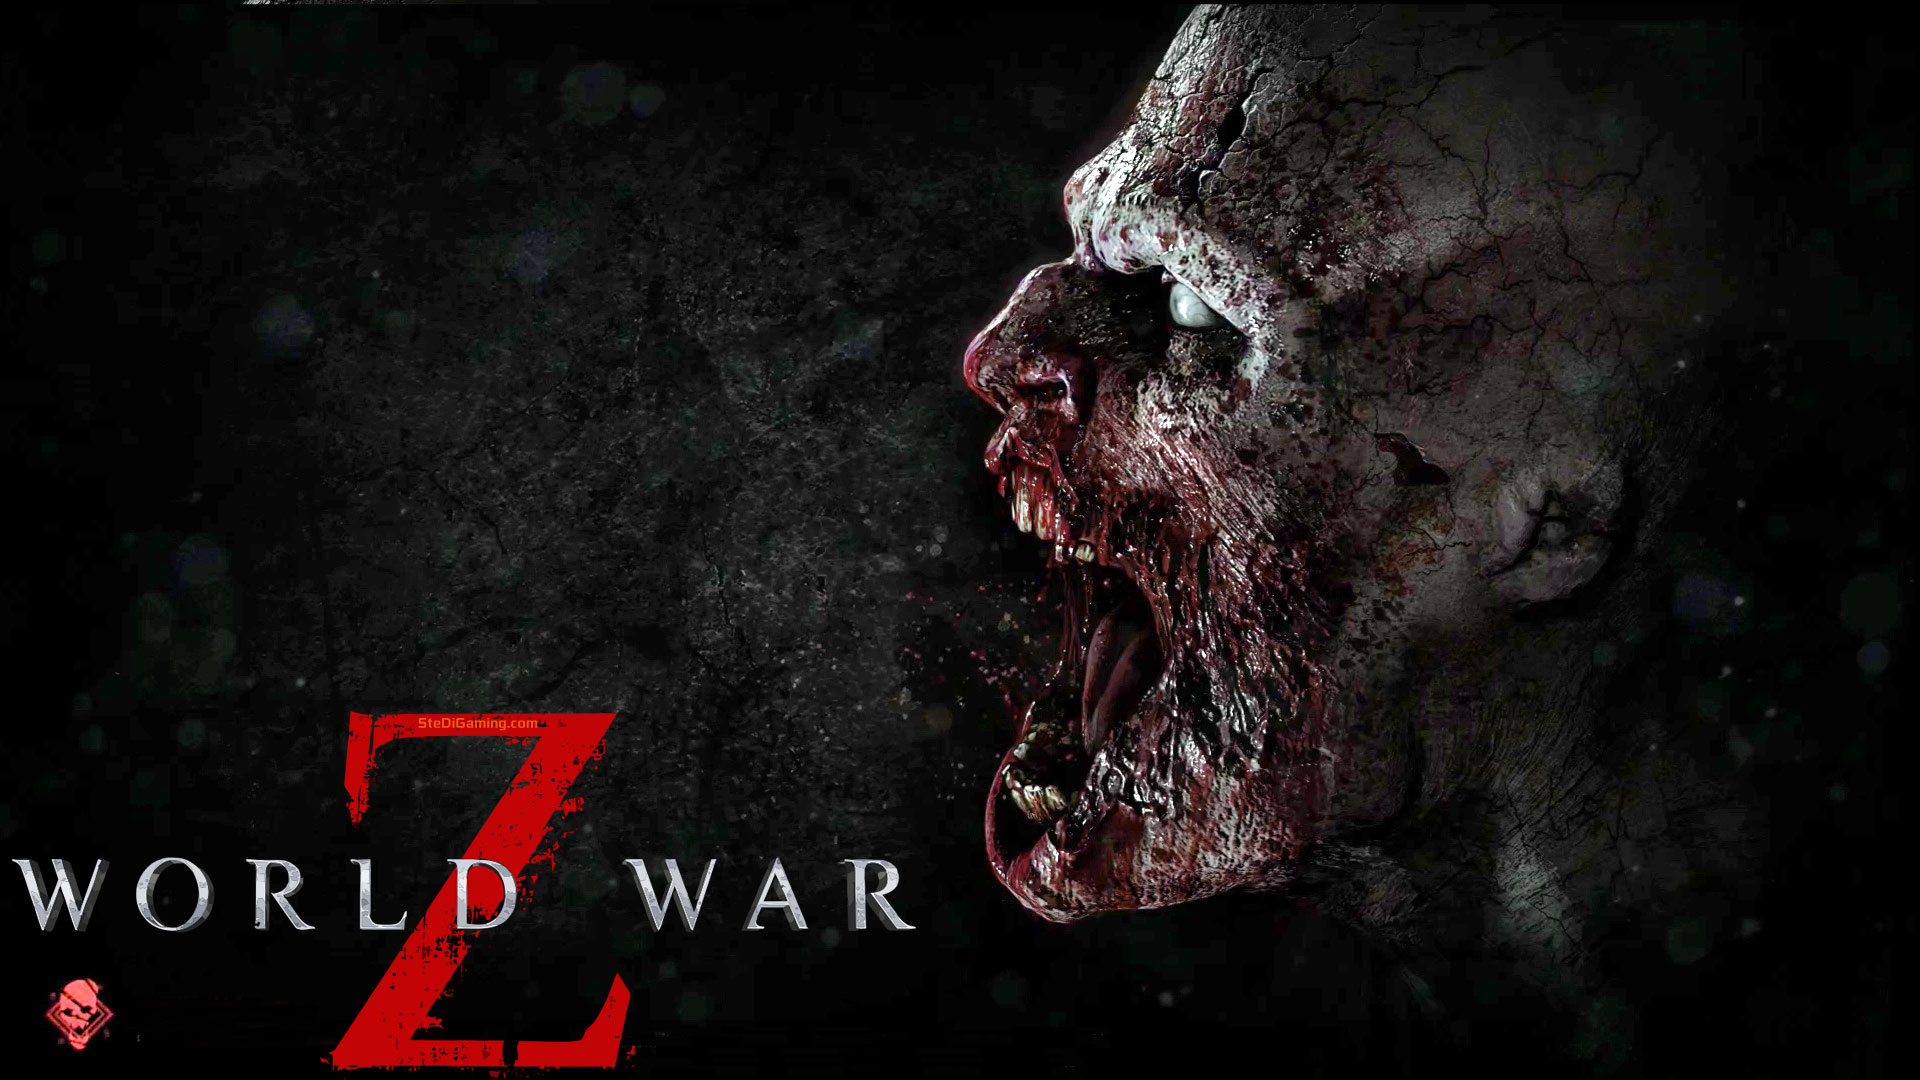 World War Z Game Wallpaper